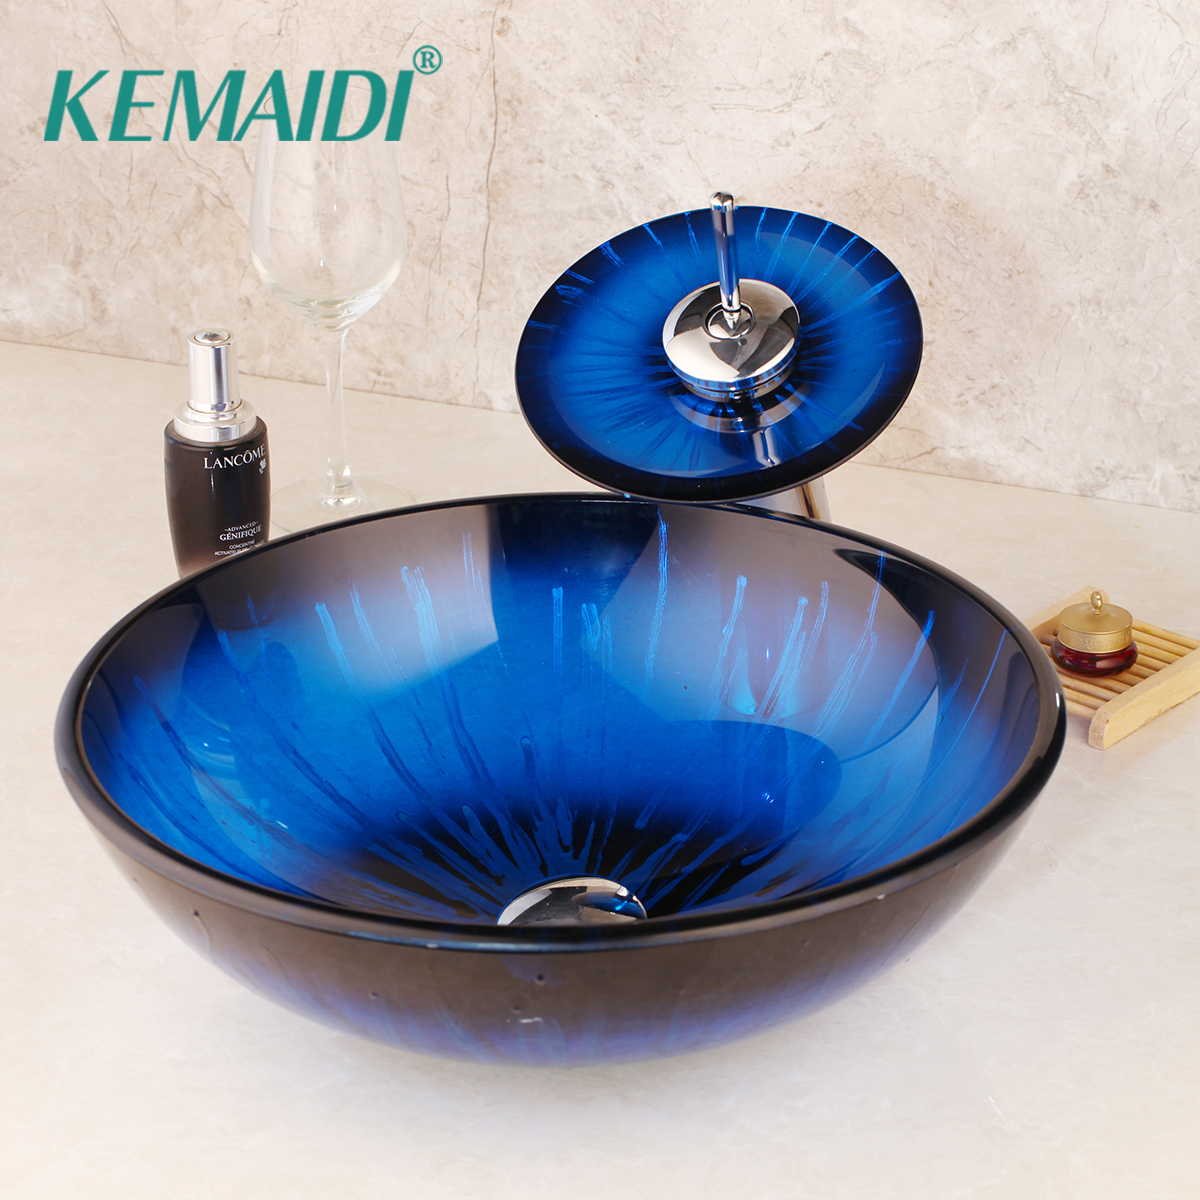 Glass Vessel Bathroom Sinks.Us 109 0 40 Off Kemaidi Stripe Blue Bathroom Sink Transparent Tempered Glass Vessel Sink With Waterfall Faucet Wash Basin Set Round Basin In